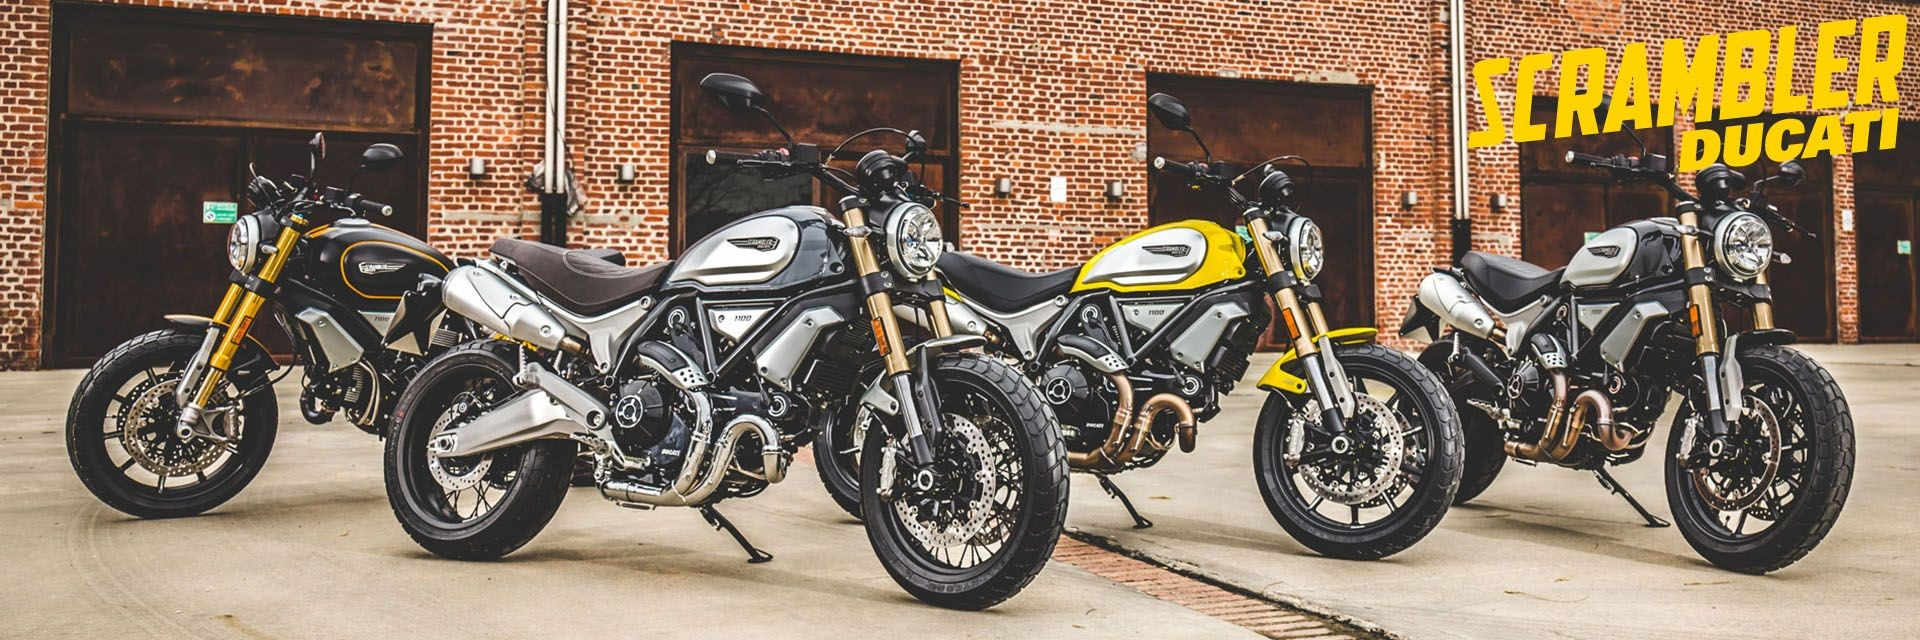 Ducati Scramblers For Sale at District Cycles in Gaithersburg, MD